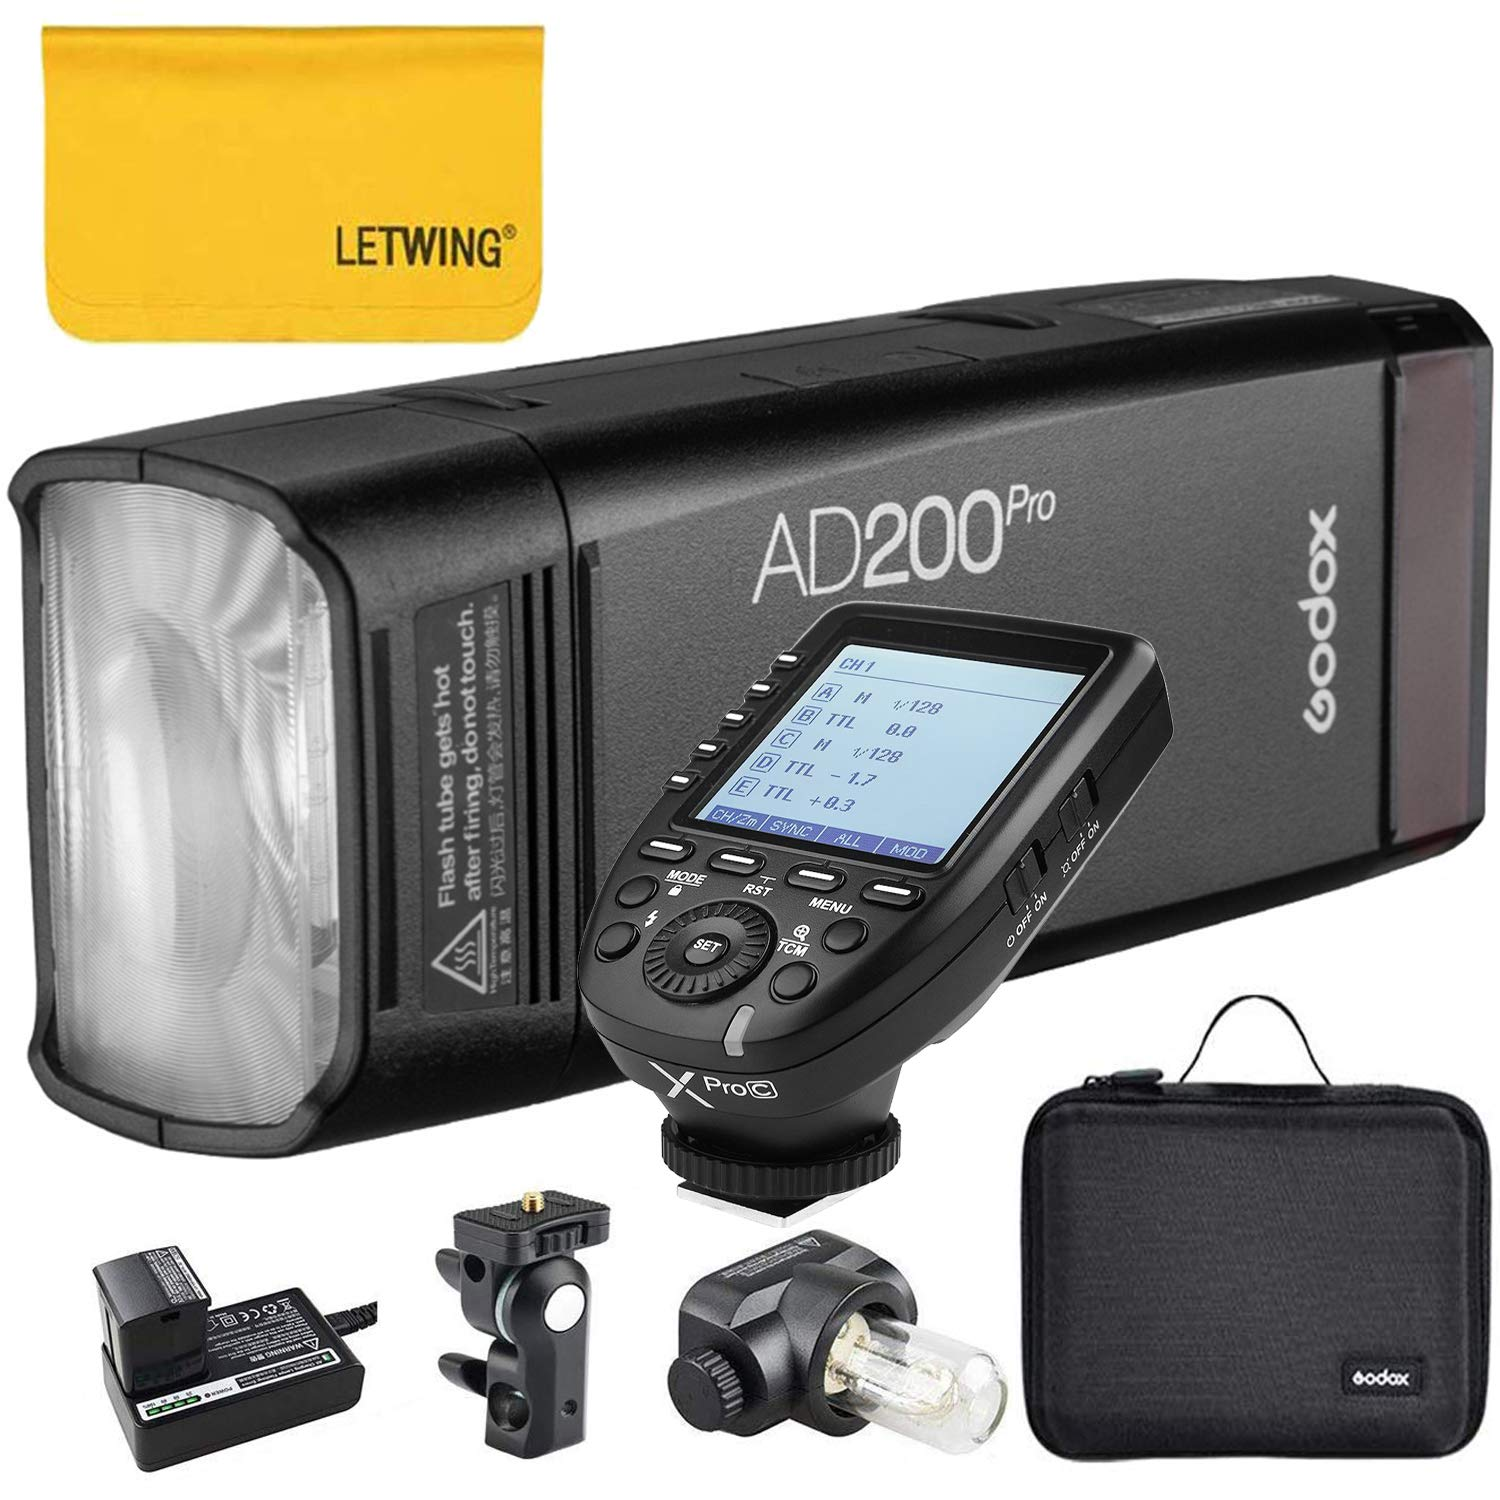 Godox AD200Pro TTL 2.4G HSS 1/8000s Pocket Flash Light Double Head 200Ws with 14.4V/2900mAh Lithium Battery and Godox XPro-C Flash Trigger Compatible for Canon Camera by Godox